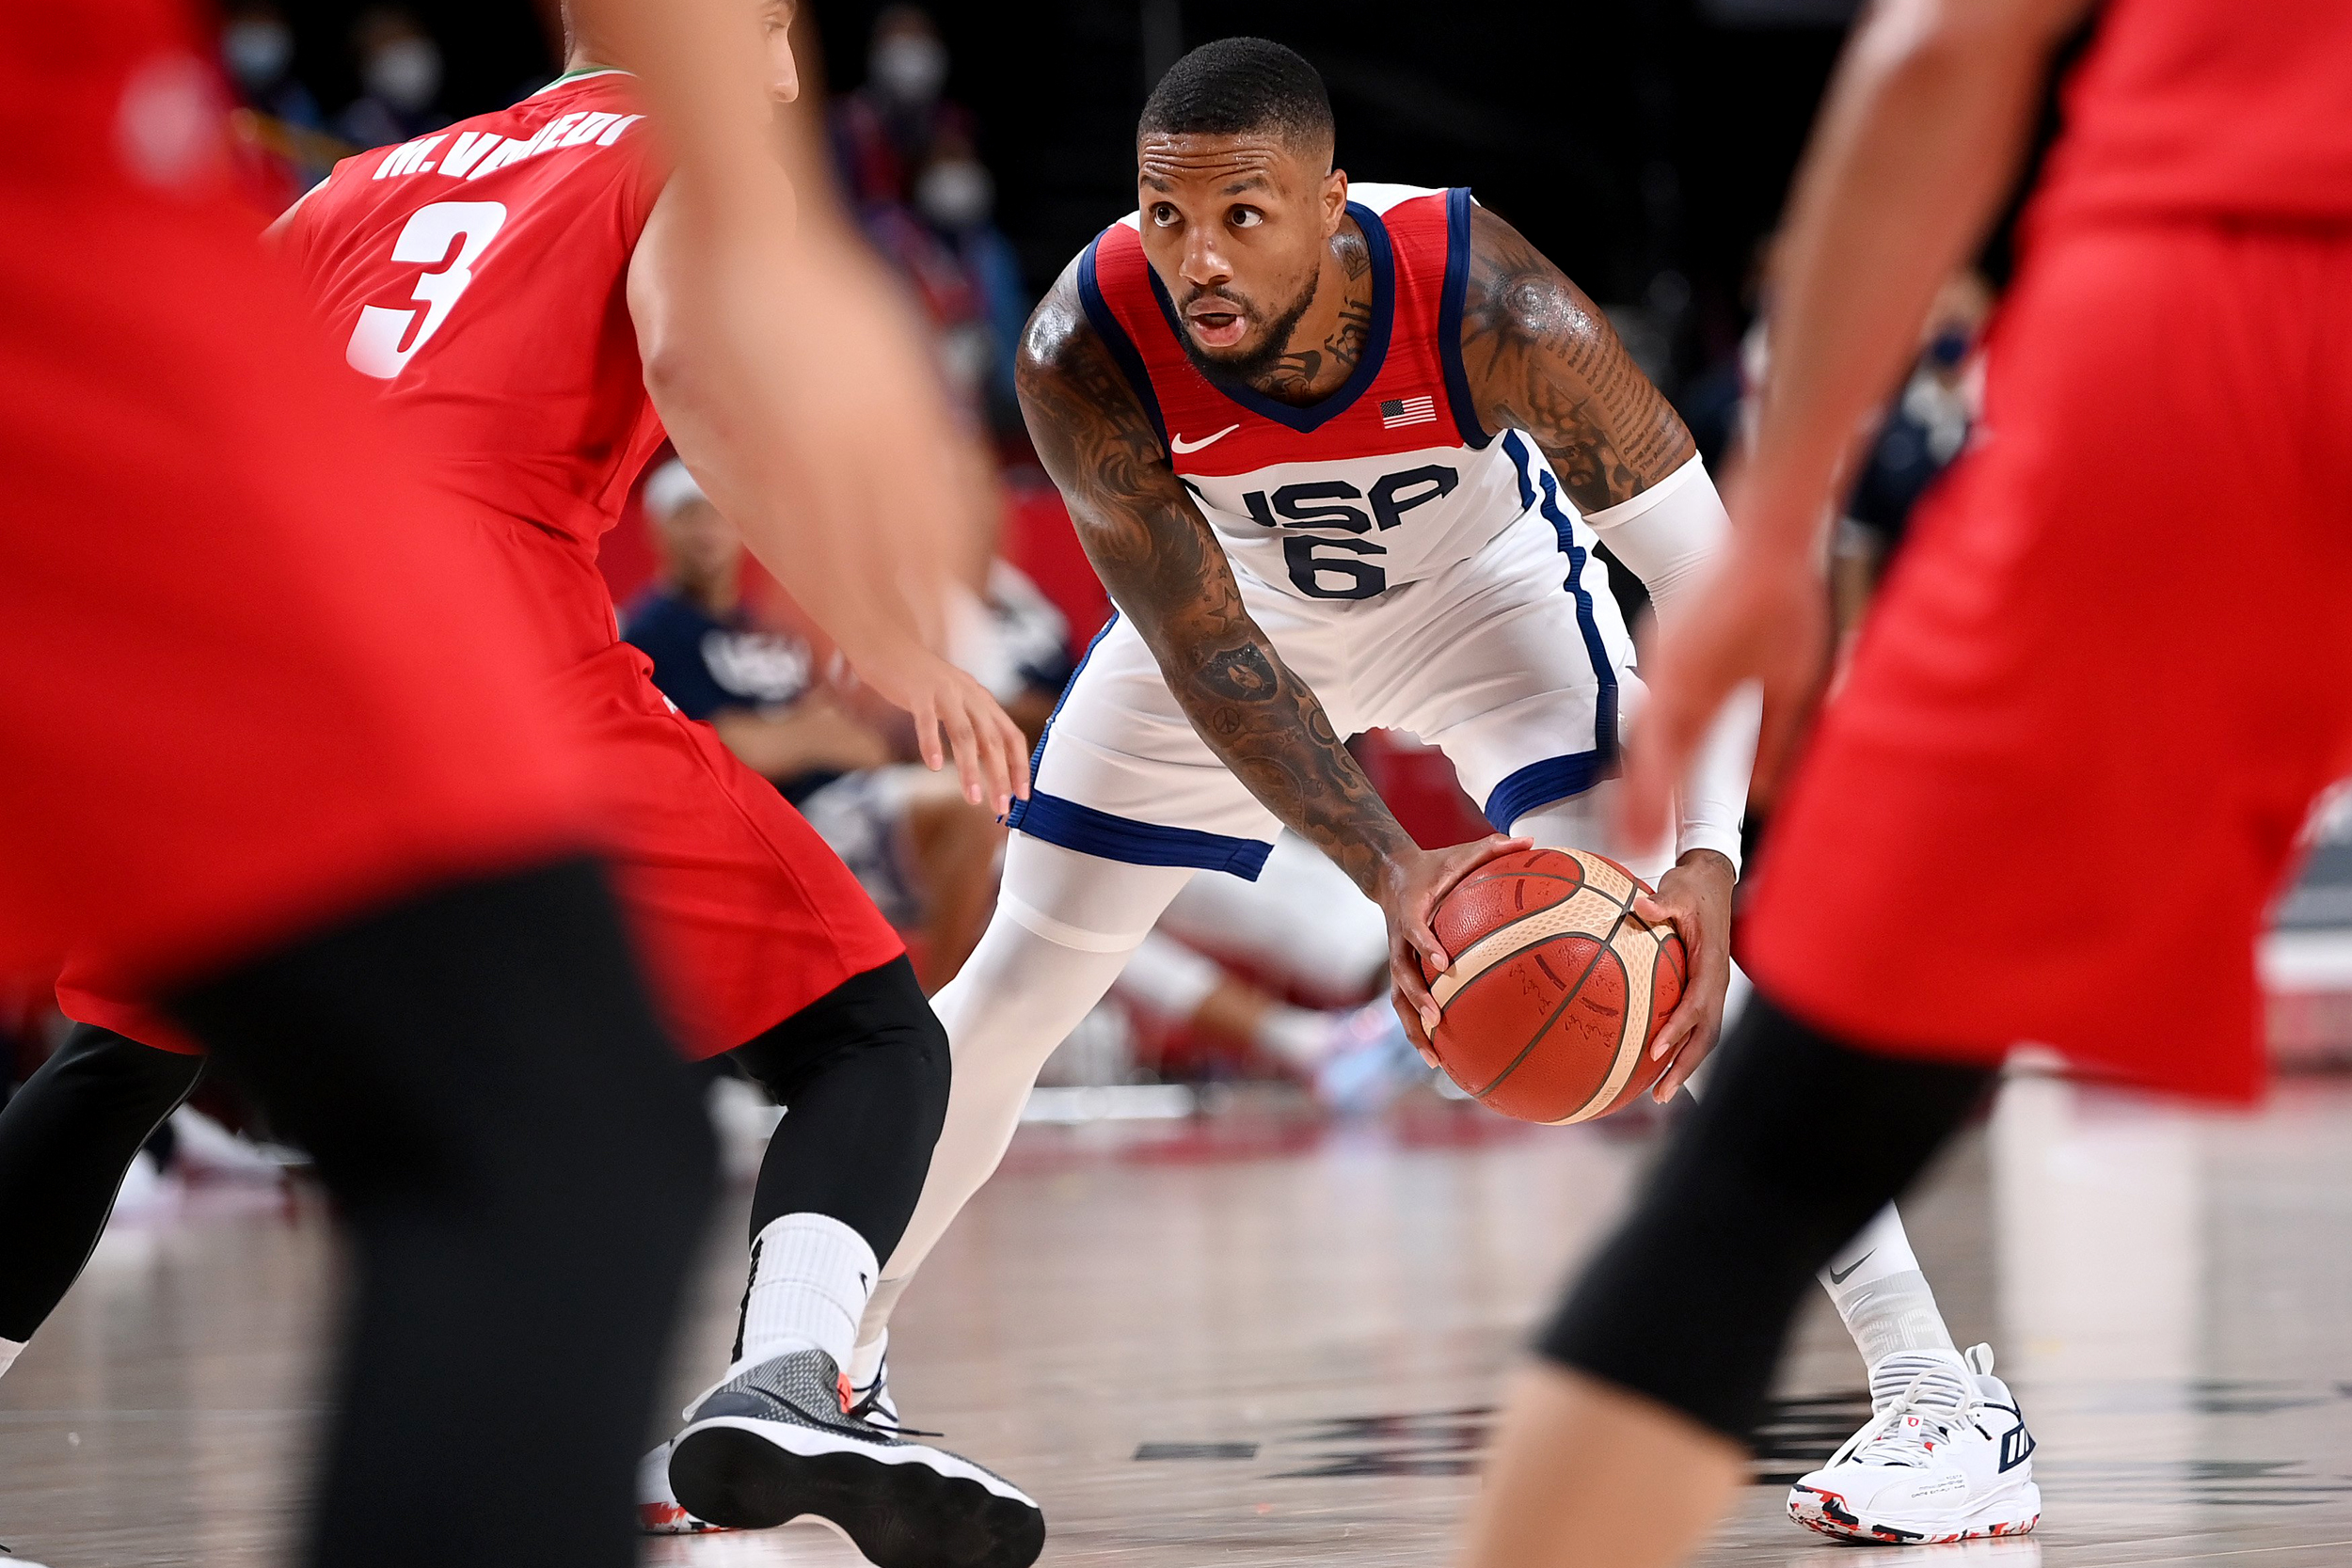 Team USA men's basketball rebounds after loss to France, routs Iran